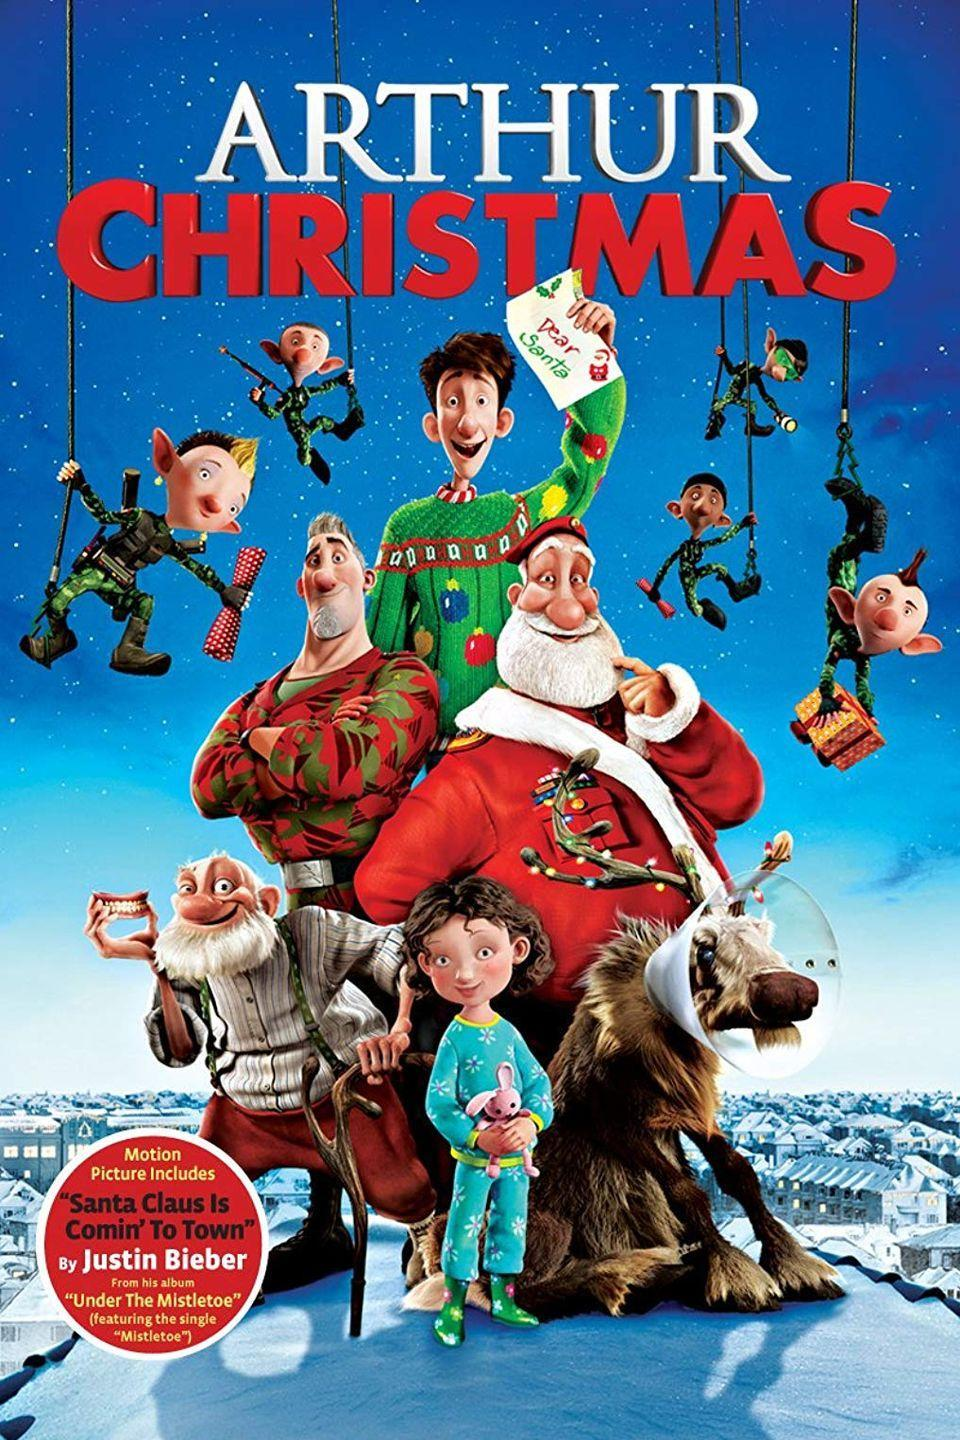 """<p>Santa does the unthinkable and forgets to deliver a gift to a child on Christmas Eve — and his youngest son, Arthur, must make the delivery before dawn. Pixar-level animation and wry British humor from the <em>Wallace & Gromit</em> team make this a heartwarming flick for the whole family.</p><p><a class=""""link rapid-noclick-resp"""" href=""""https://www.amazon.com/Arthur-Christmas-James-McAvoy/dp/B009SQQRH2/?tag=syn-yahoo-20&ascsubtag=%5Bartid%7C10055.g.1315%5Bsrc%7Cyahoo-us"""" rel=""""nofollow noopener"""" target=""""_blank"""" data-ylk=""""slk:WATCH NOW"""">WATCH NOW</a></p>"""